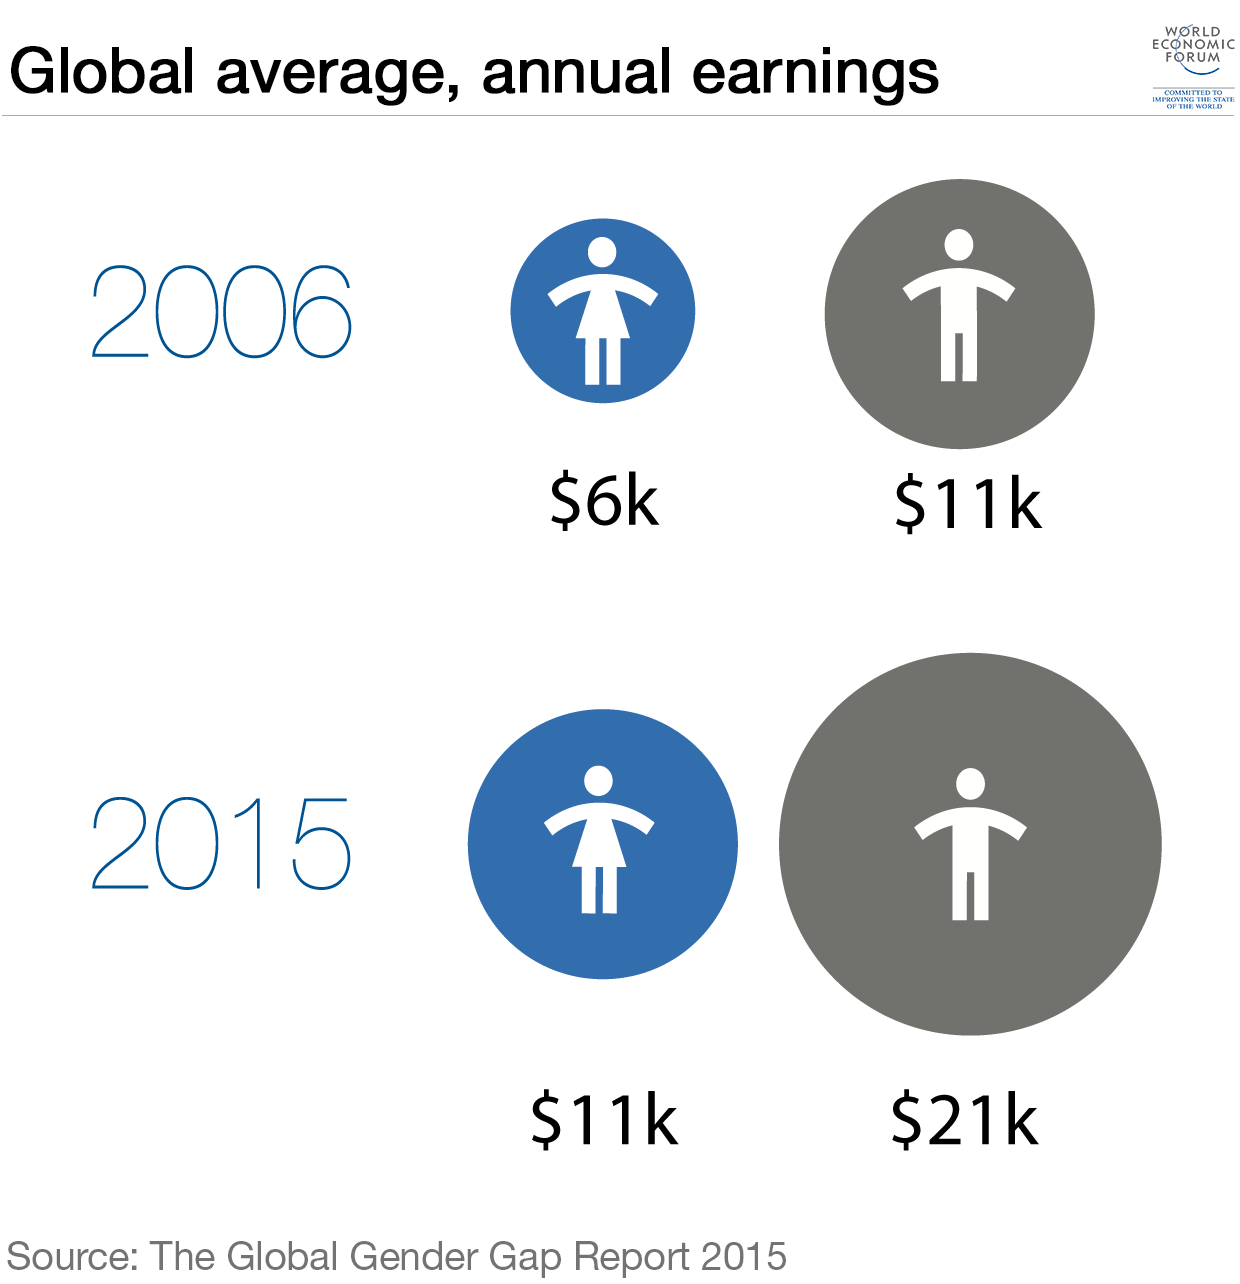 160107-gender pay gap report global average earnings WEF